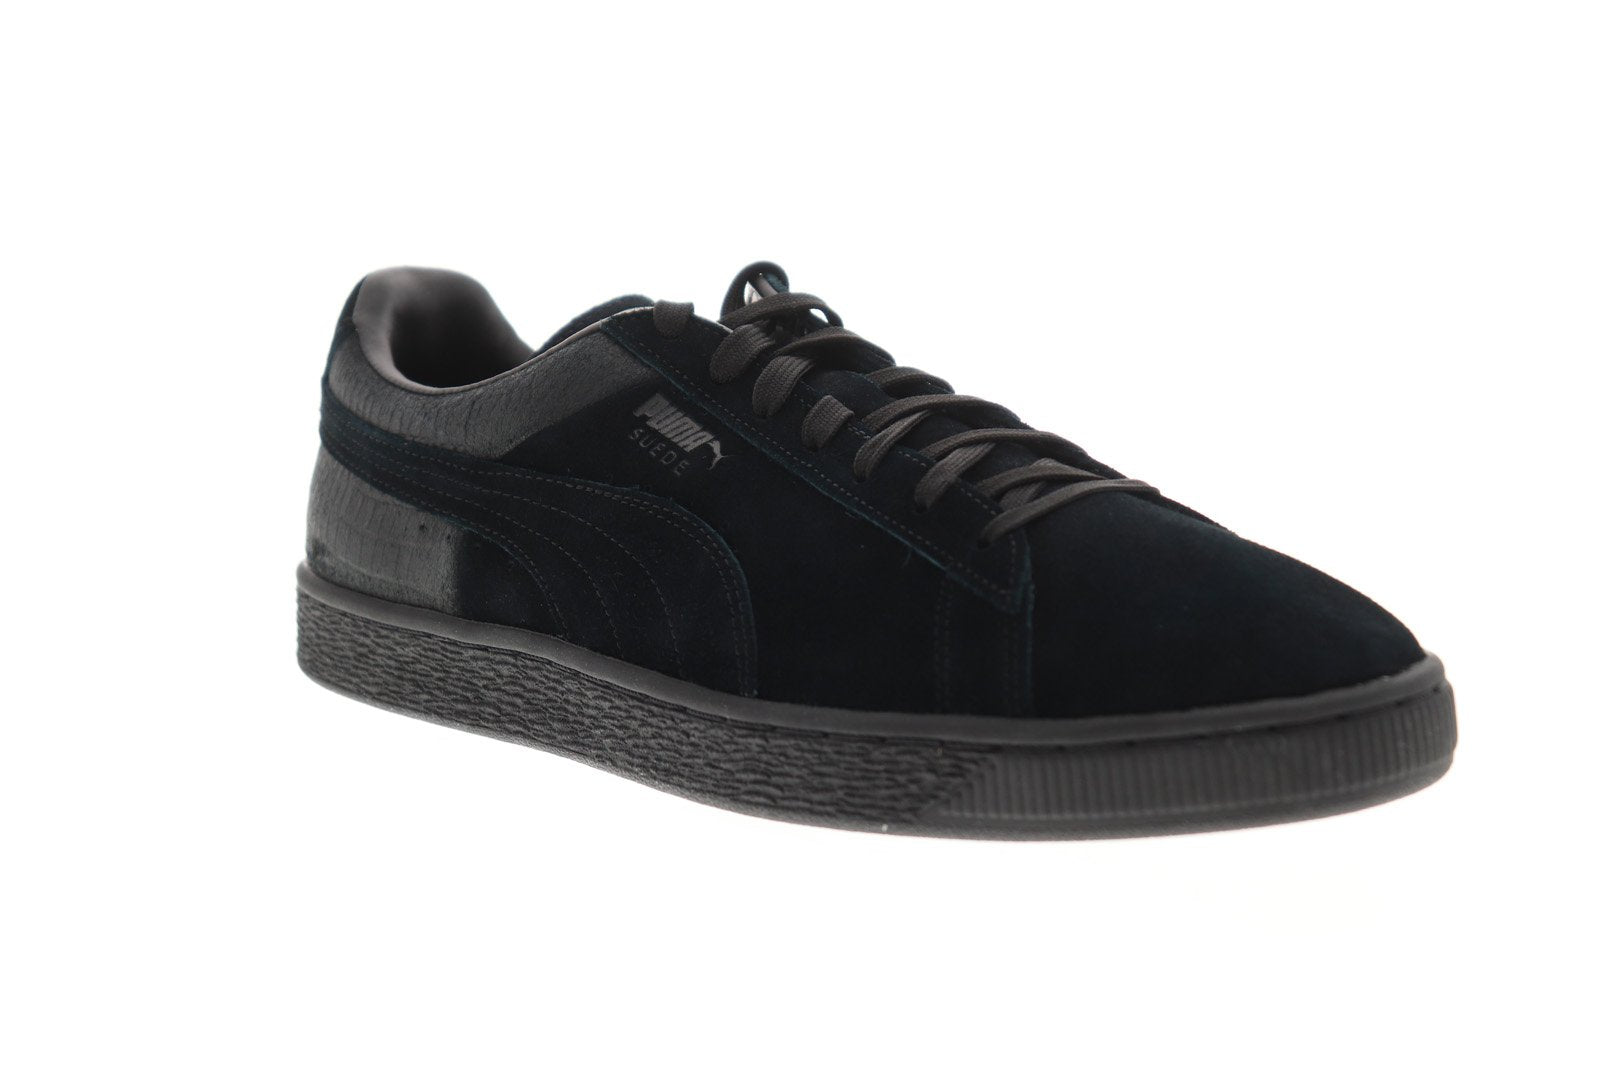 reputable site 91fee 850af Puma Suede Classic Casual Emboss Mens Black Suede Low Top Sneakers Shoes